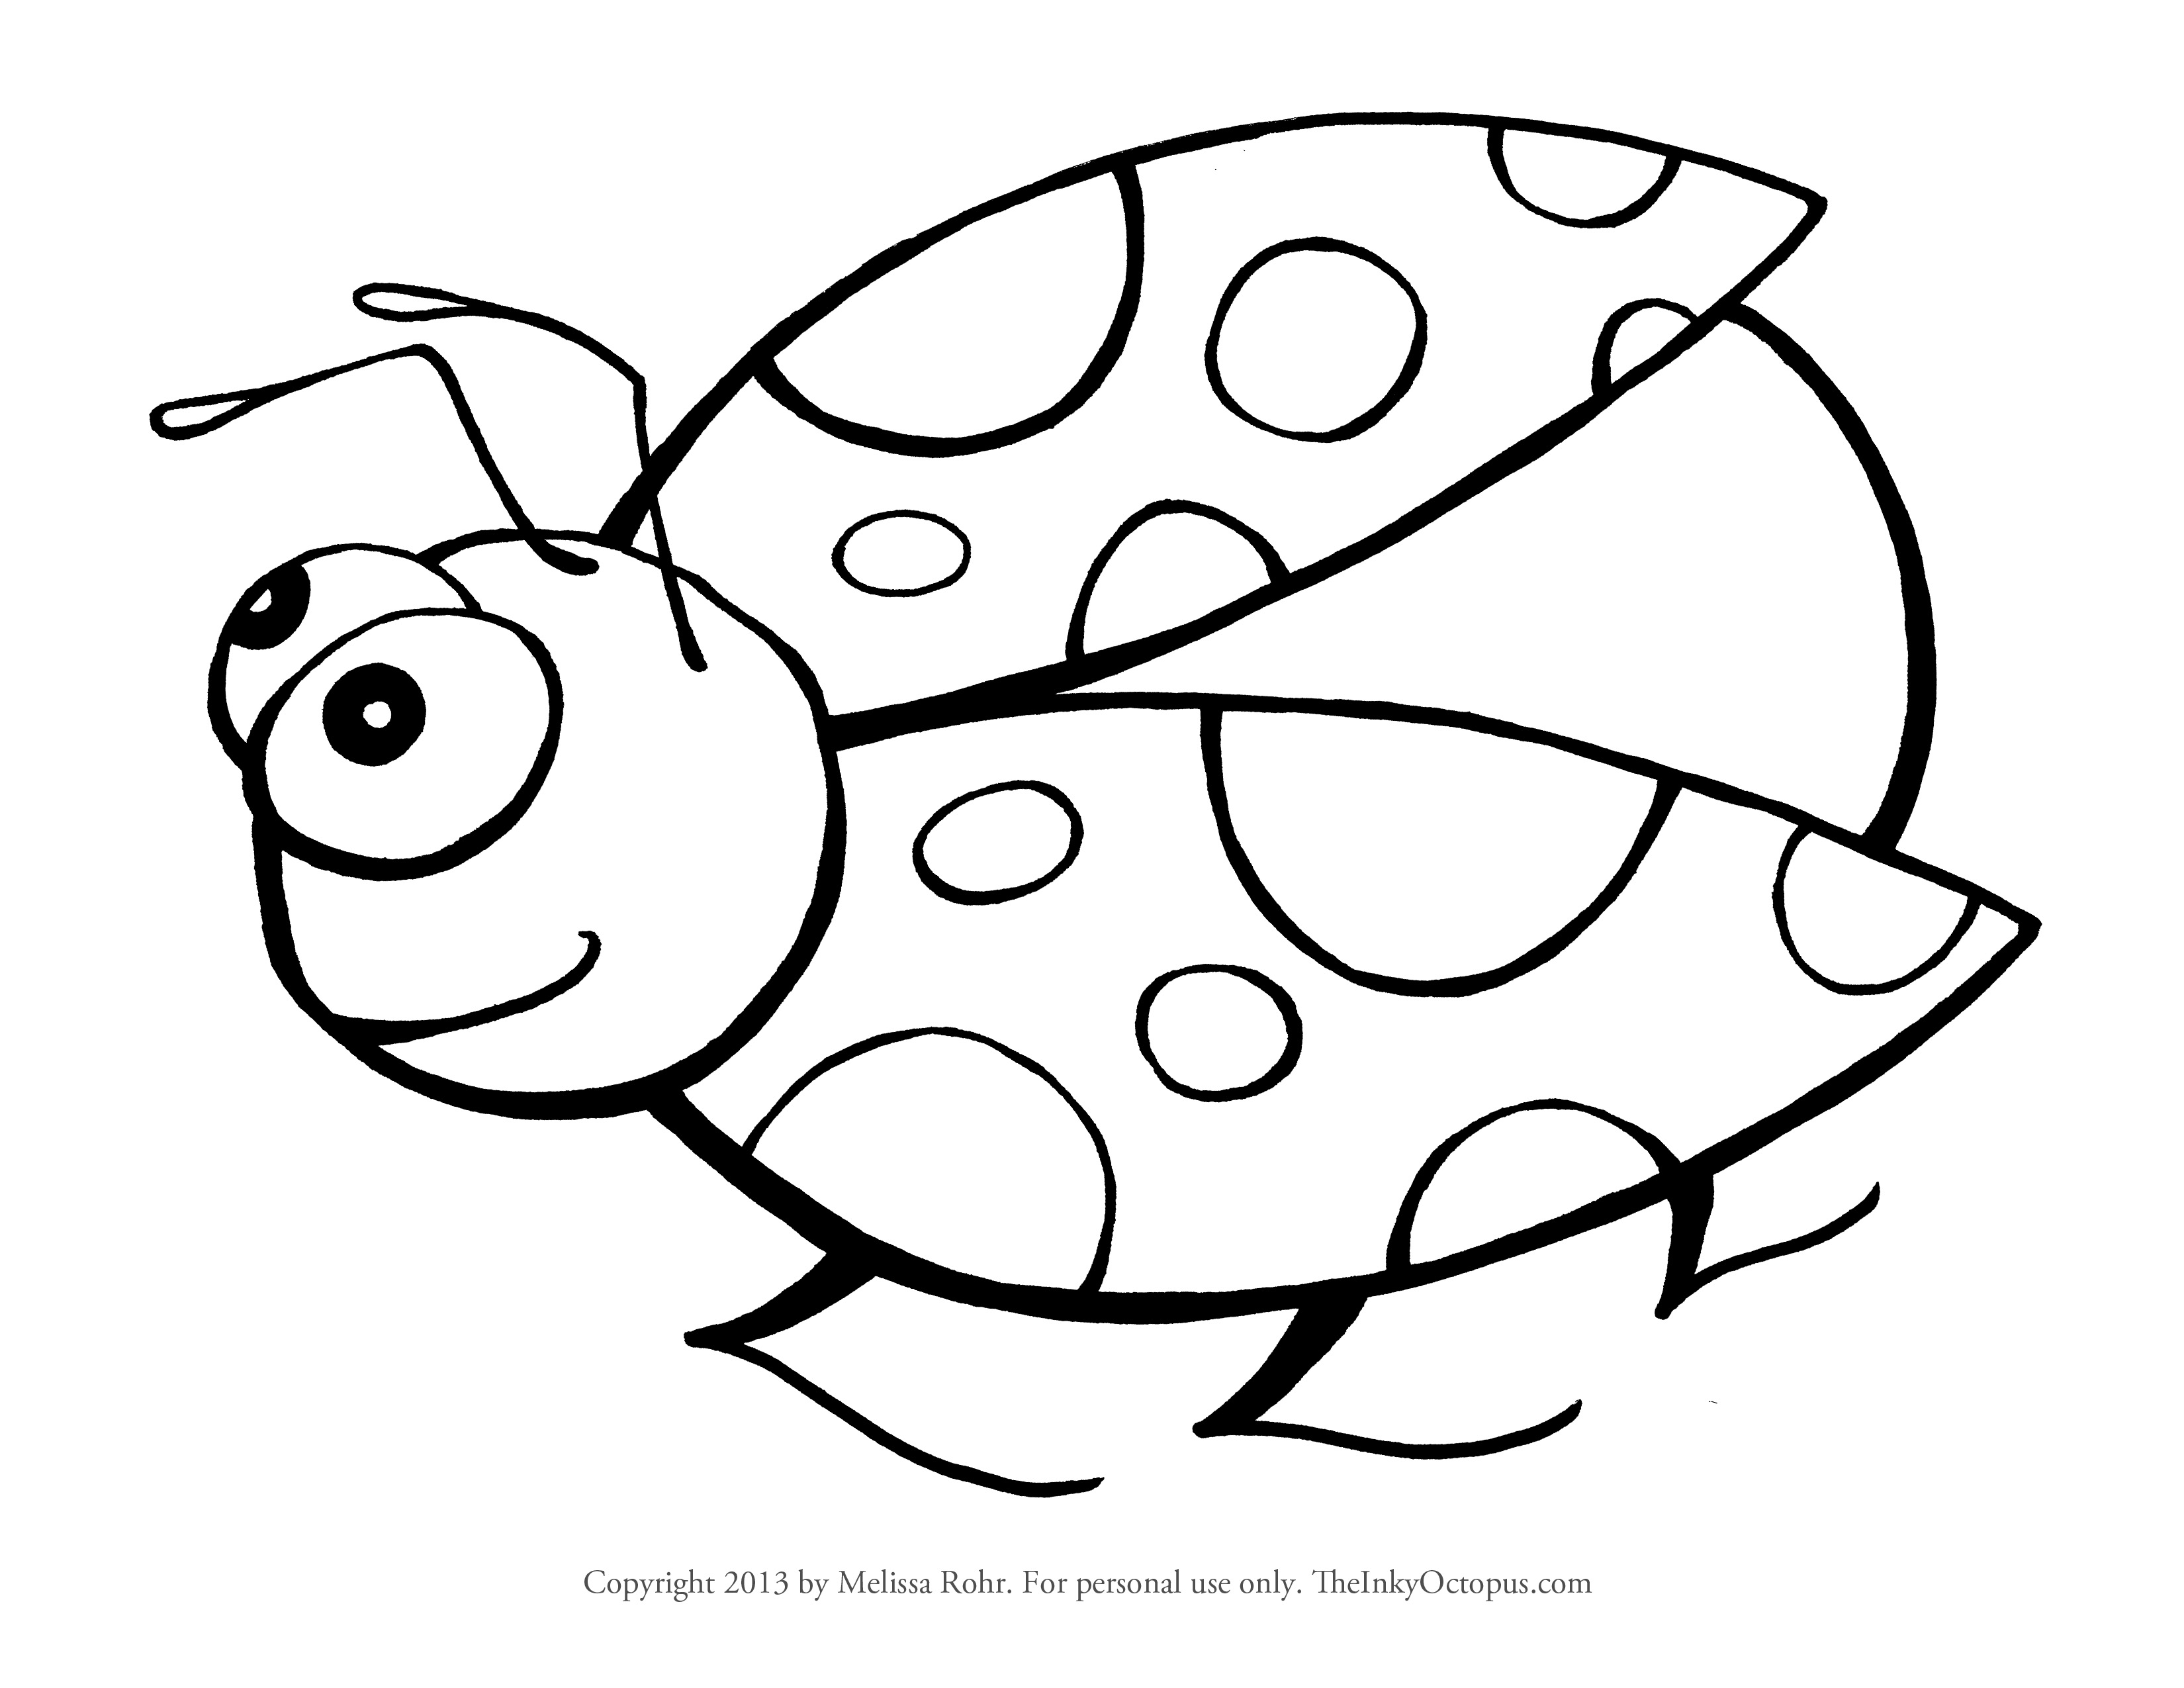 insects for coloring insect coloring pages best coloring pages for kids insects for coloring 1 1